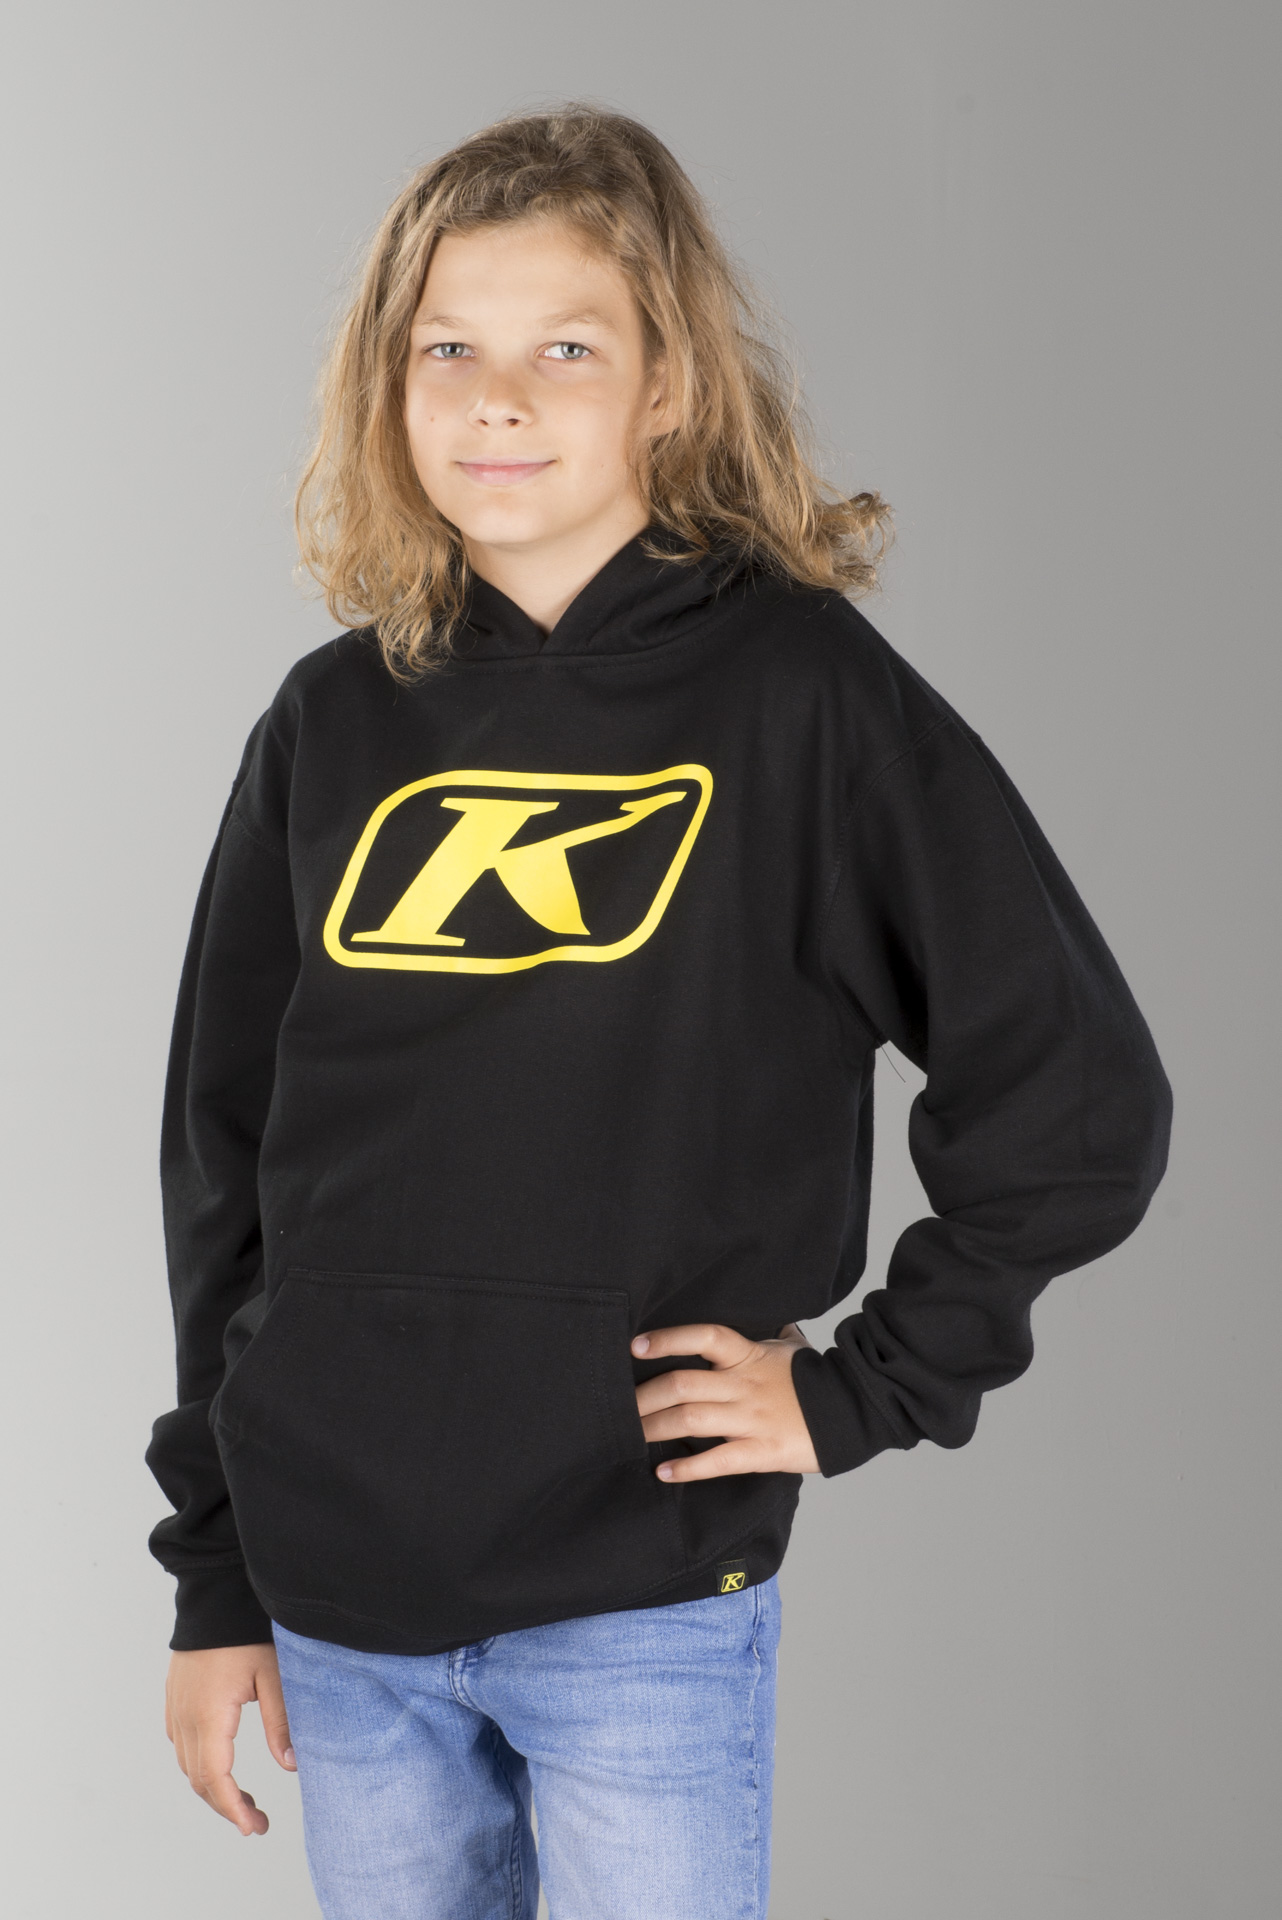 Klim Icon Pullover Youth Hoodie Black Buy now, get 10% off